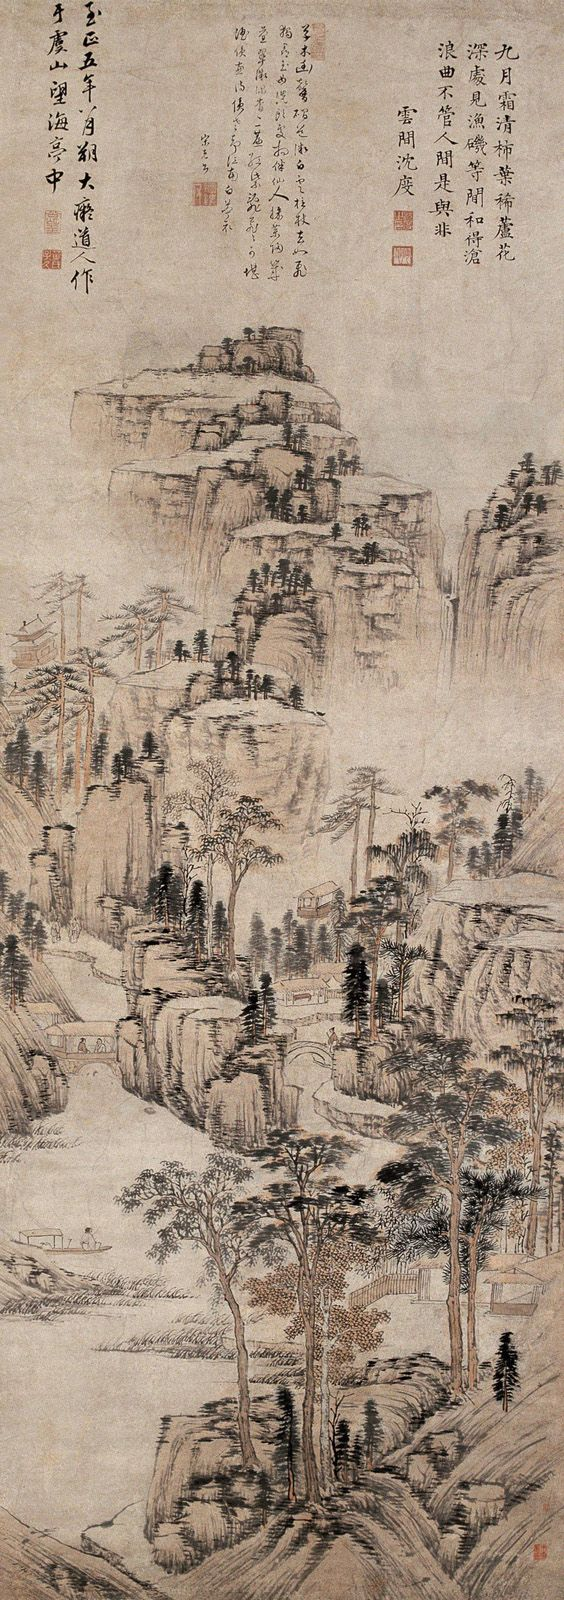 The movement captured in the drawing from the calligraphy style i want my work to show a similar style. Huang Gongwang (1269-1354): In the Yu Mountain |